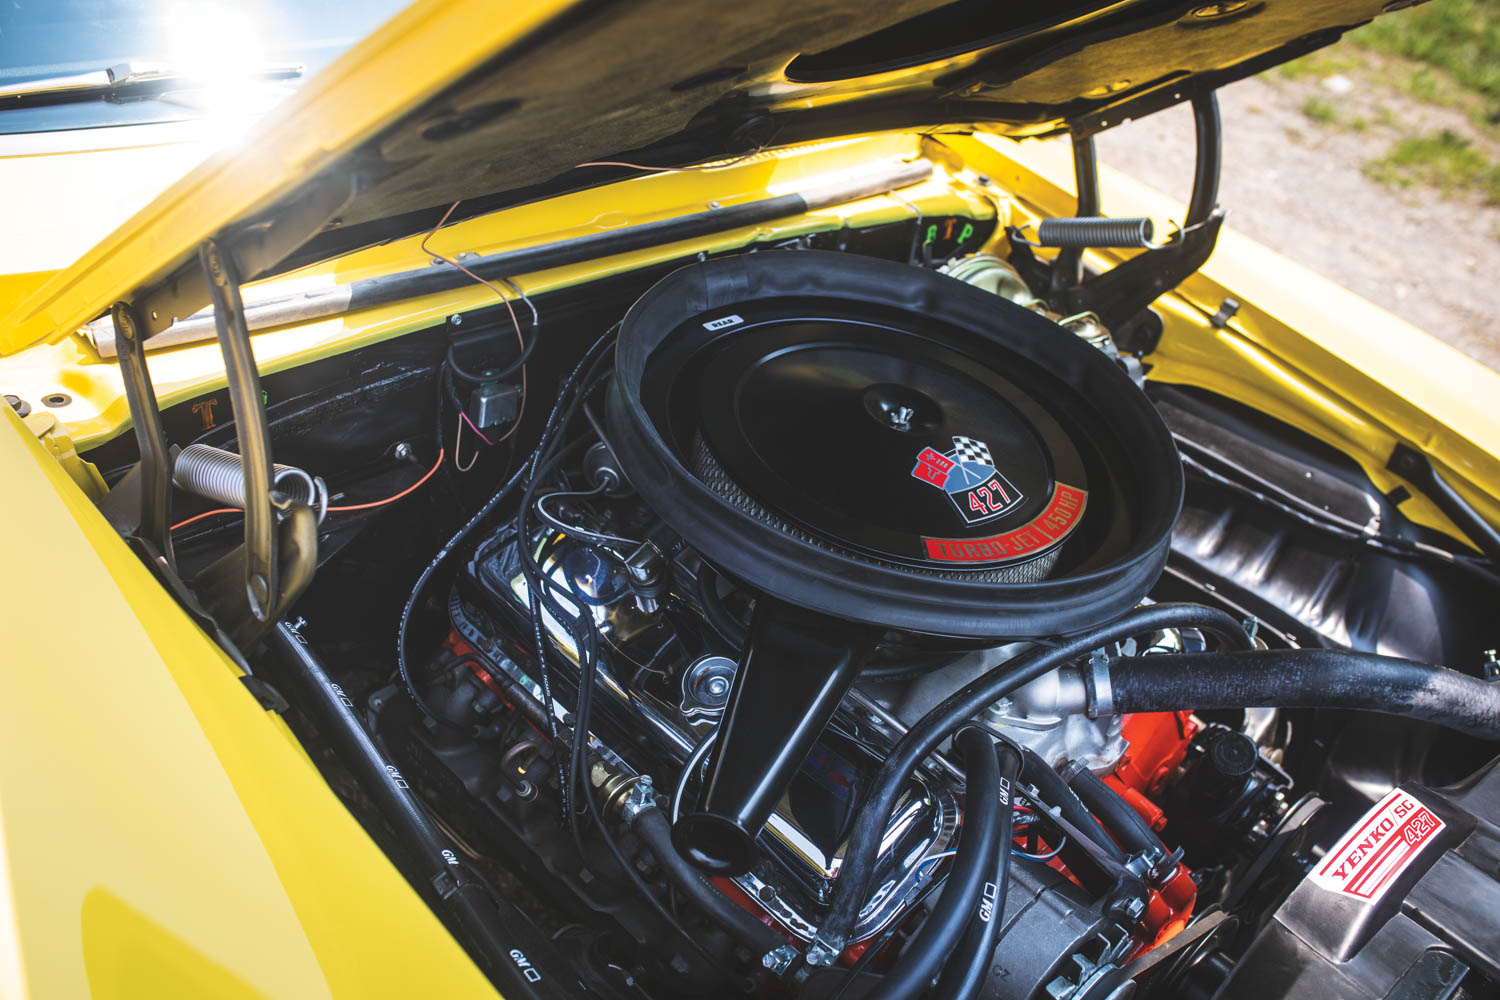 The Yenko's 427- cid V-8 is rated at 425 horsepower and 460 poundfeet of torque. It's quite happy to rev past its generous 6000-rpm redline.